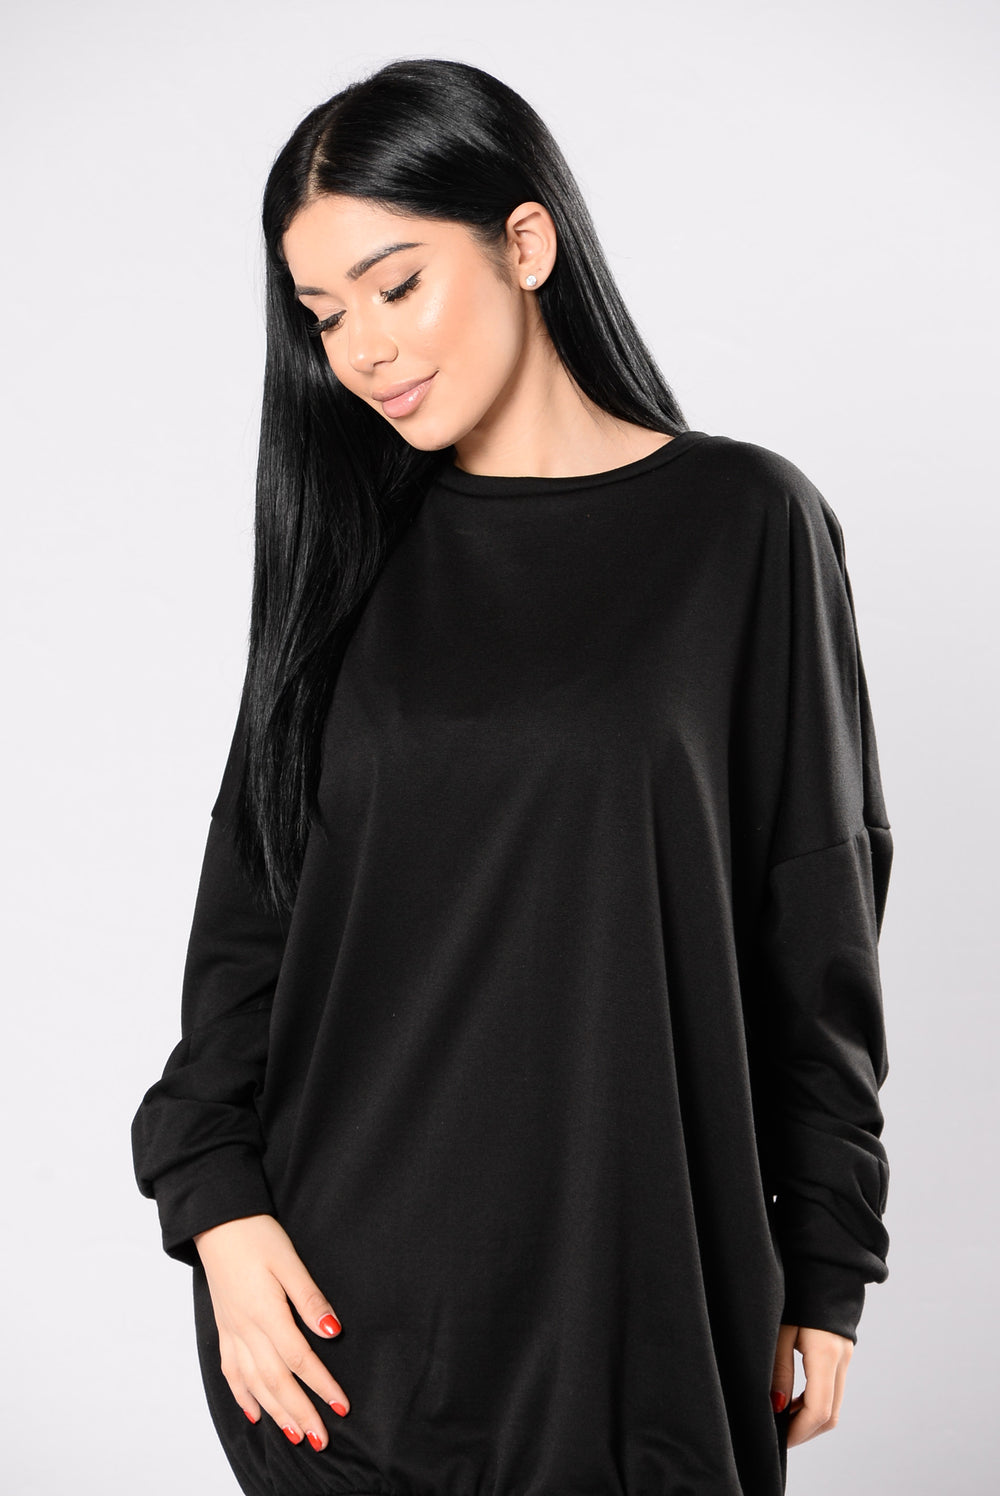 Waiting For You Tonight Tunic - Black